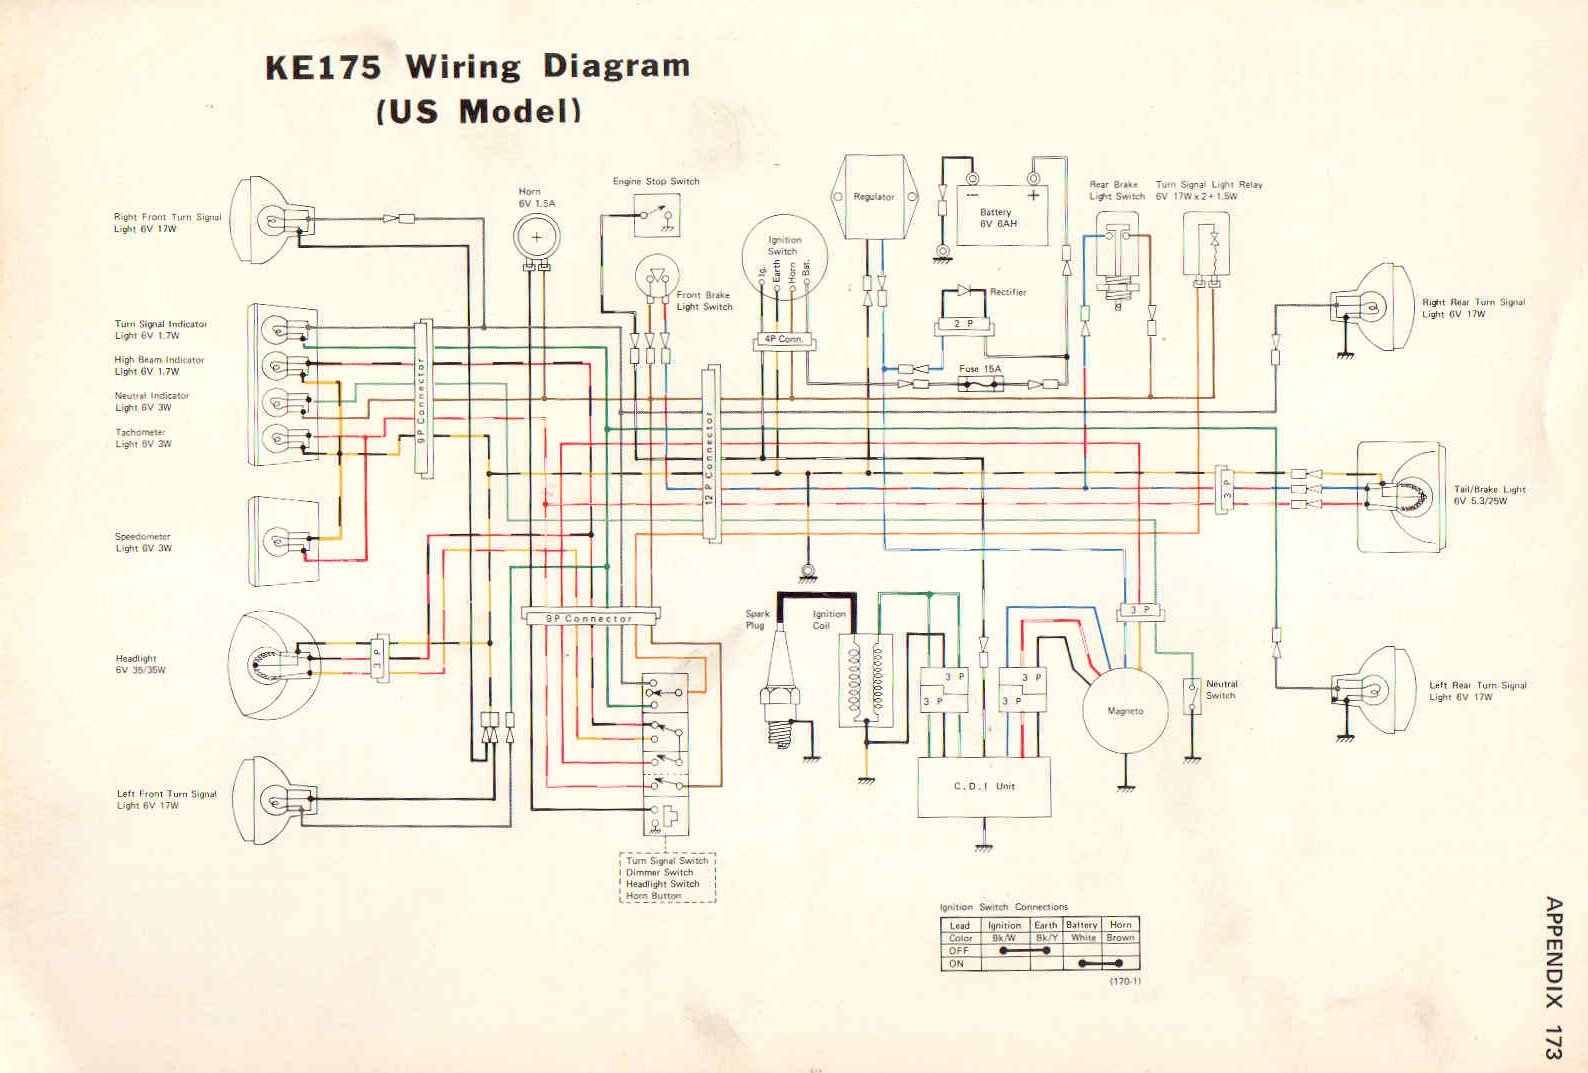 76 77 78 KE175 Wiring Diagram 76 77 78 ke175 wiring diagram yamaha ct175 wiring diagram at nearapp.co